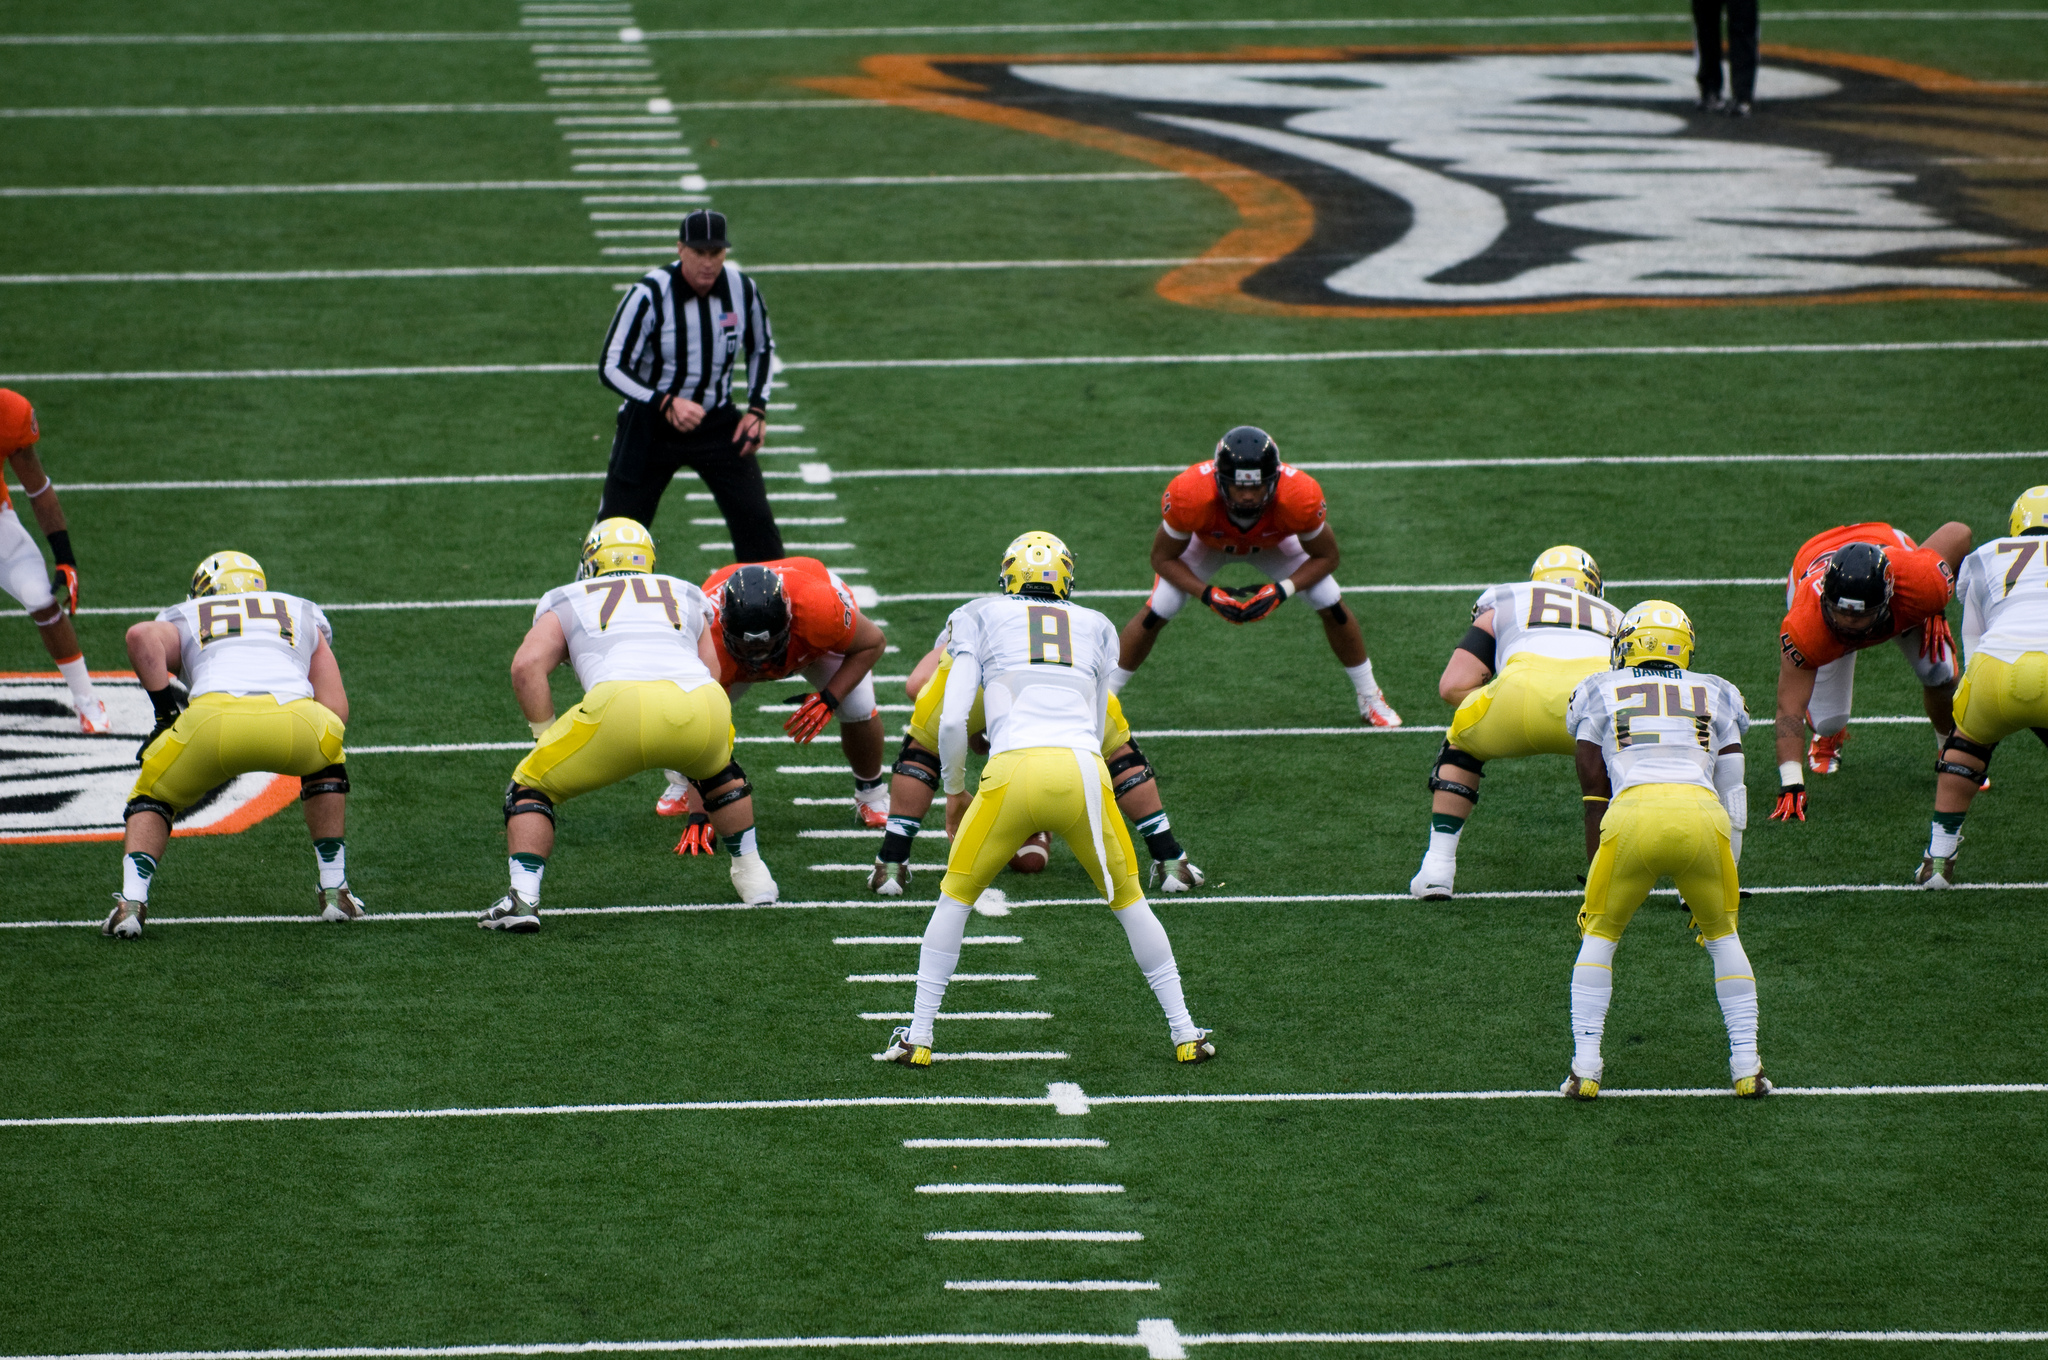 Oregon_State_vs_Oregon_Nov_23_2012.jpg